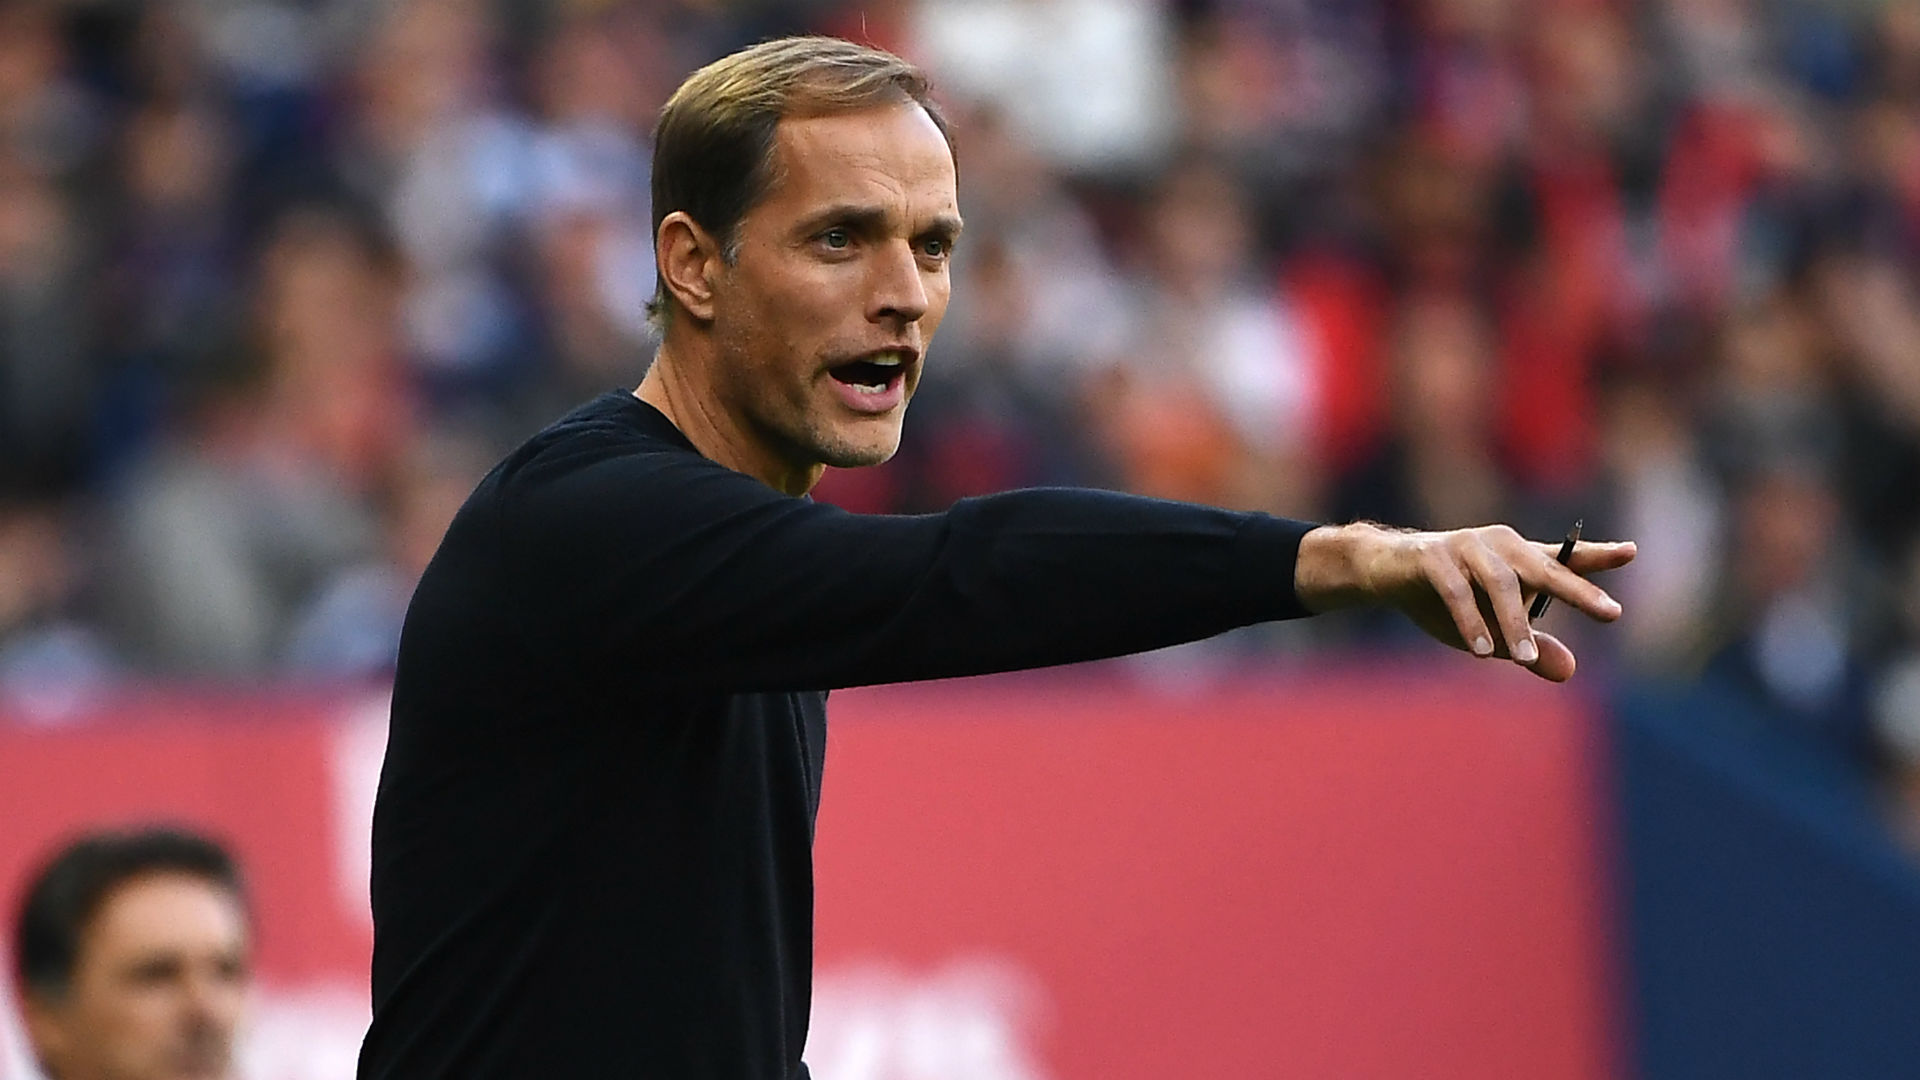 'We're not at a restaurant!' - PSG's Tuchel annoyed with journalist